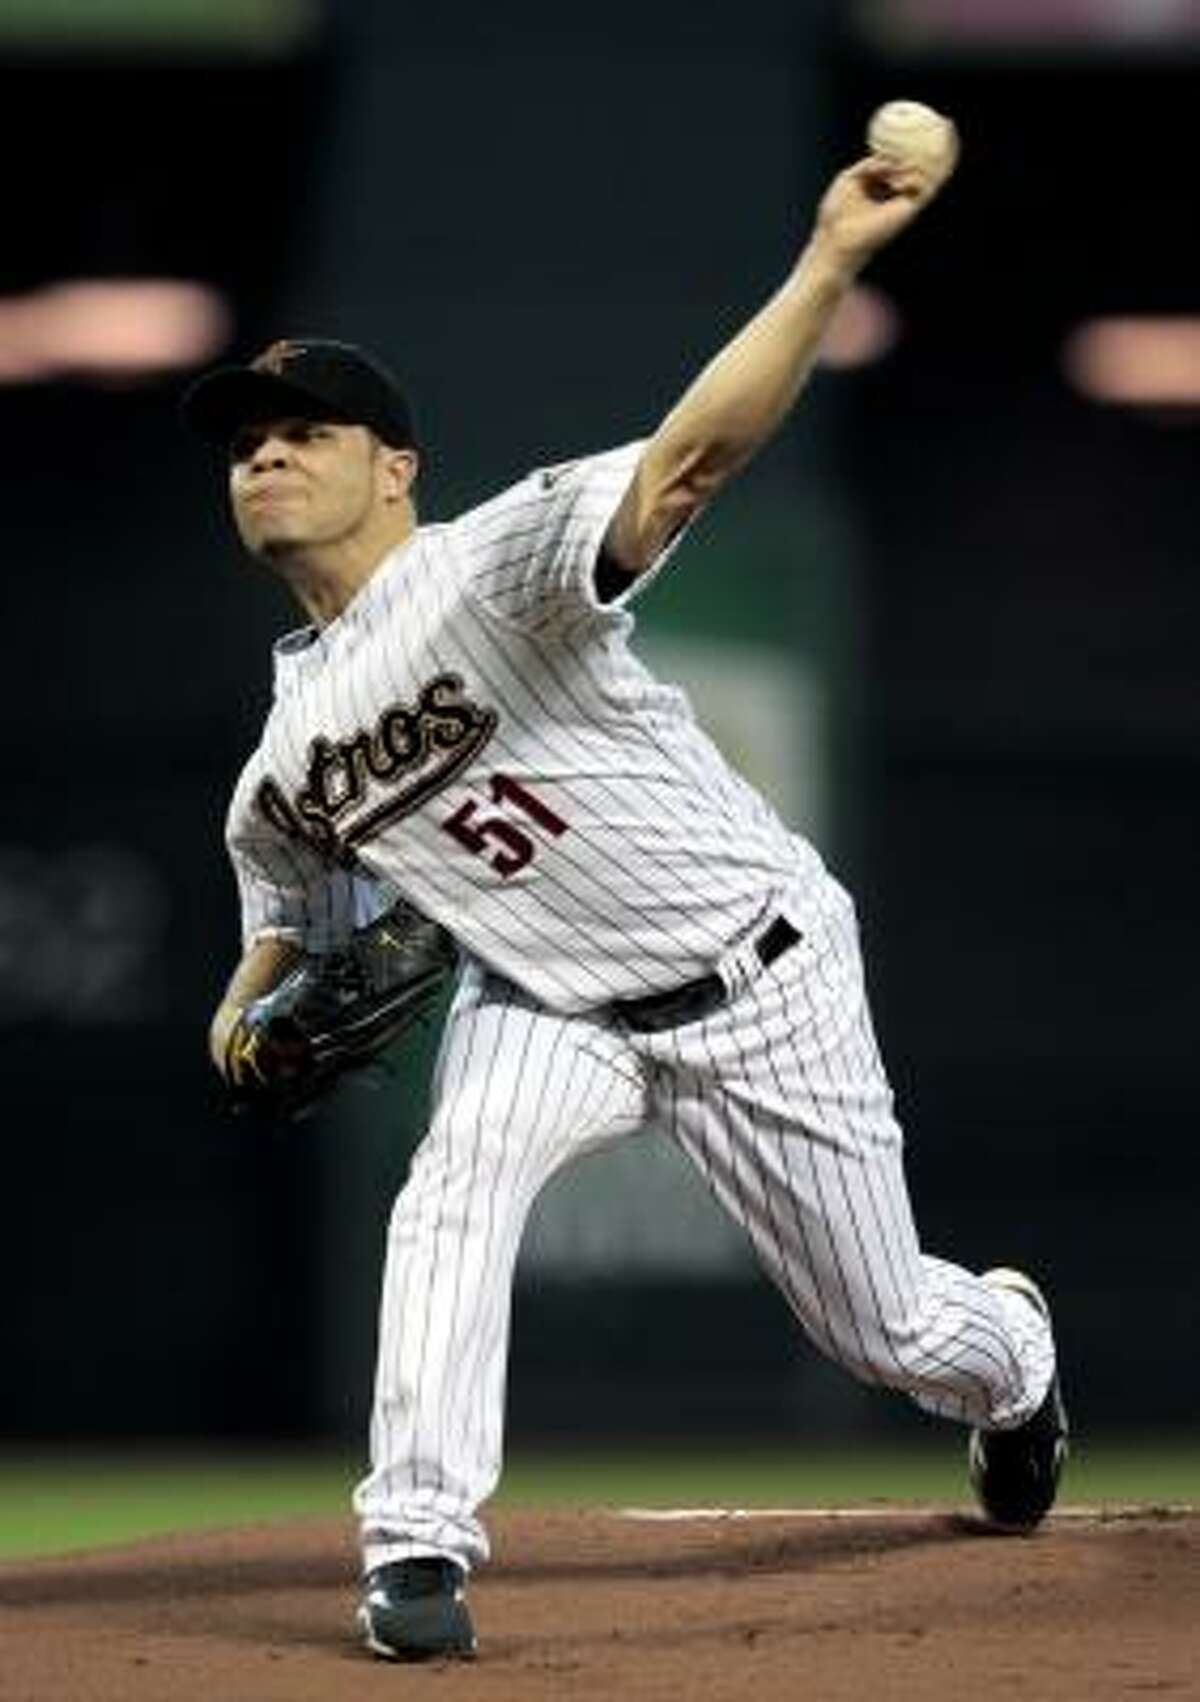 Astros pitcher Wandy Rodriguez started for the game against the San Diego Padres.